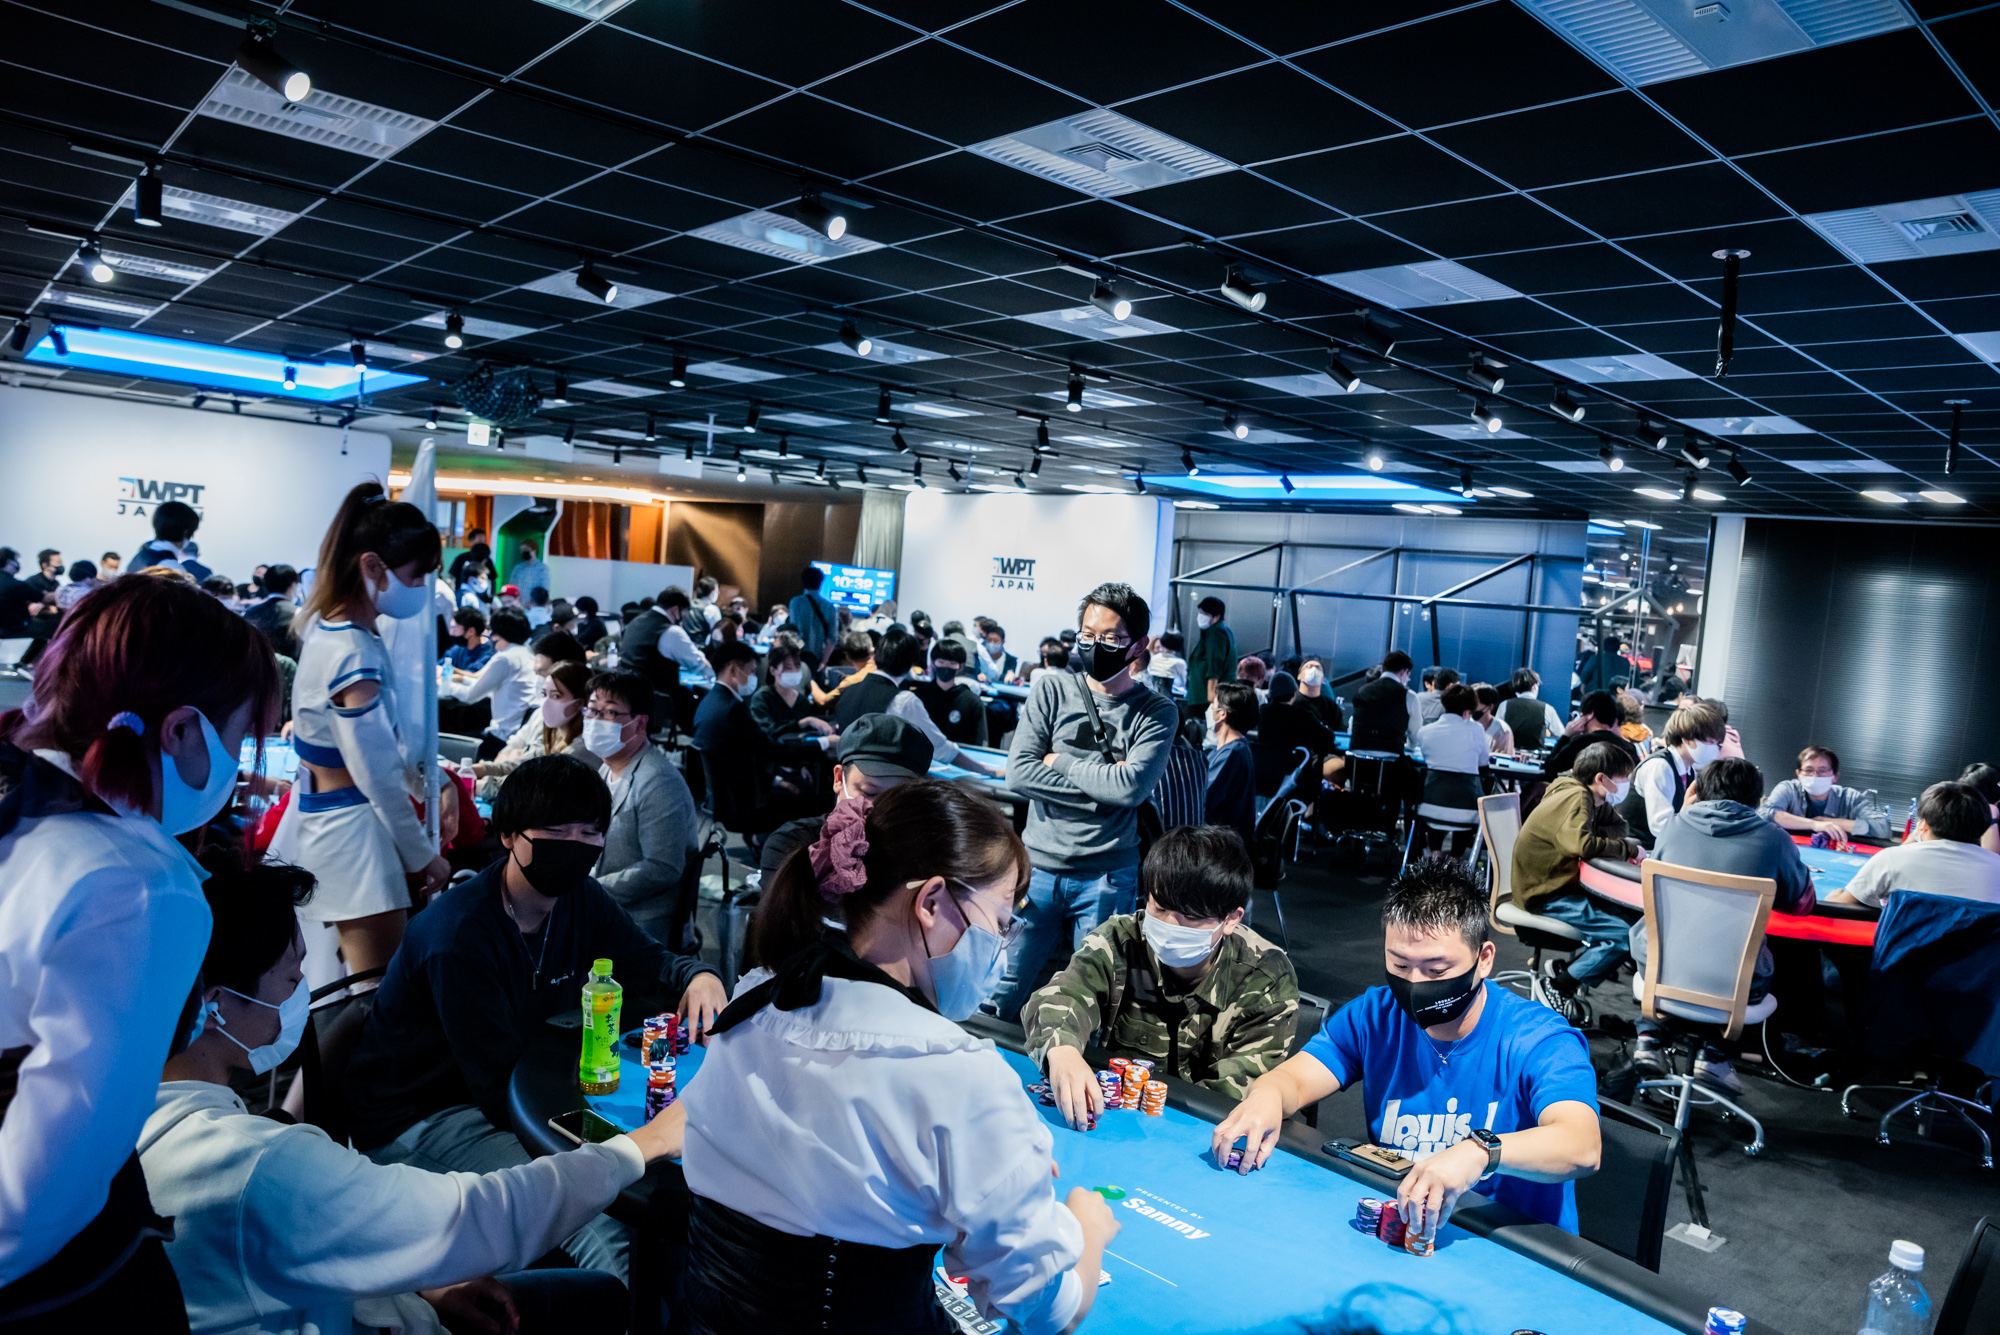 43 of record 1,291 field still in contention for WPT Japan title